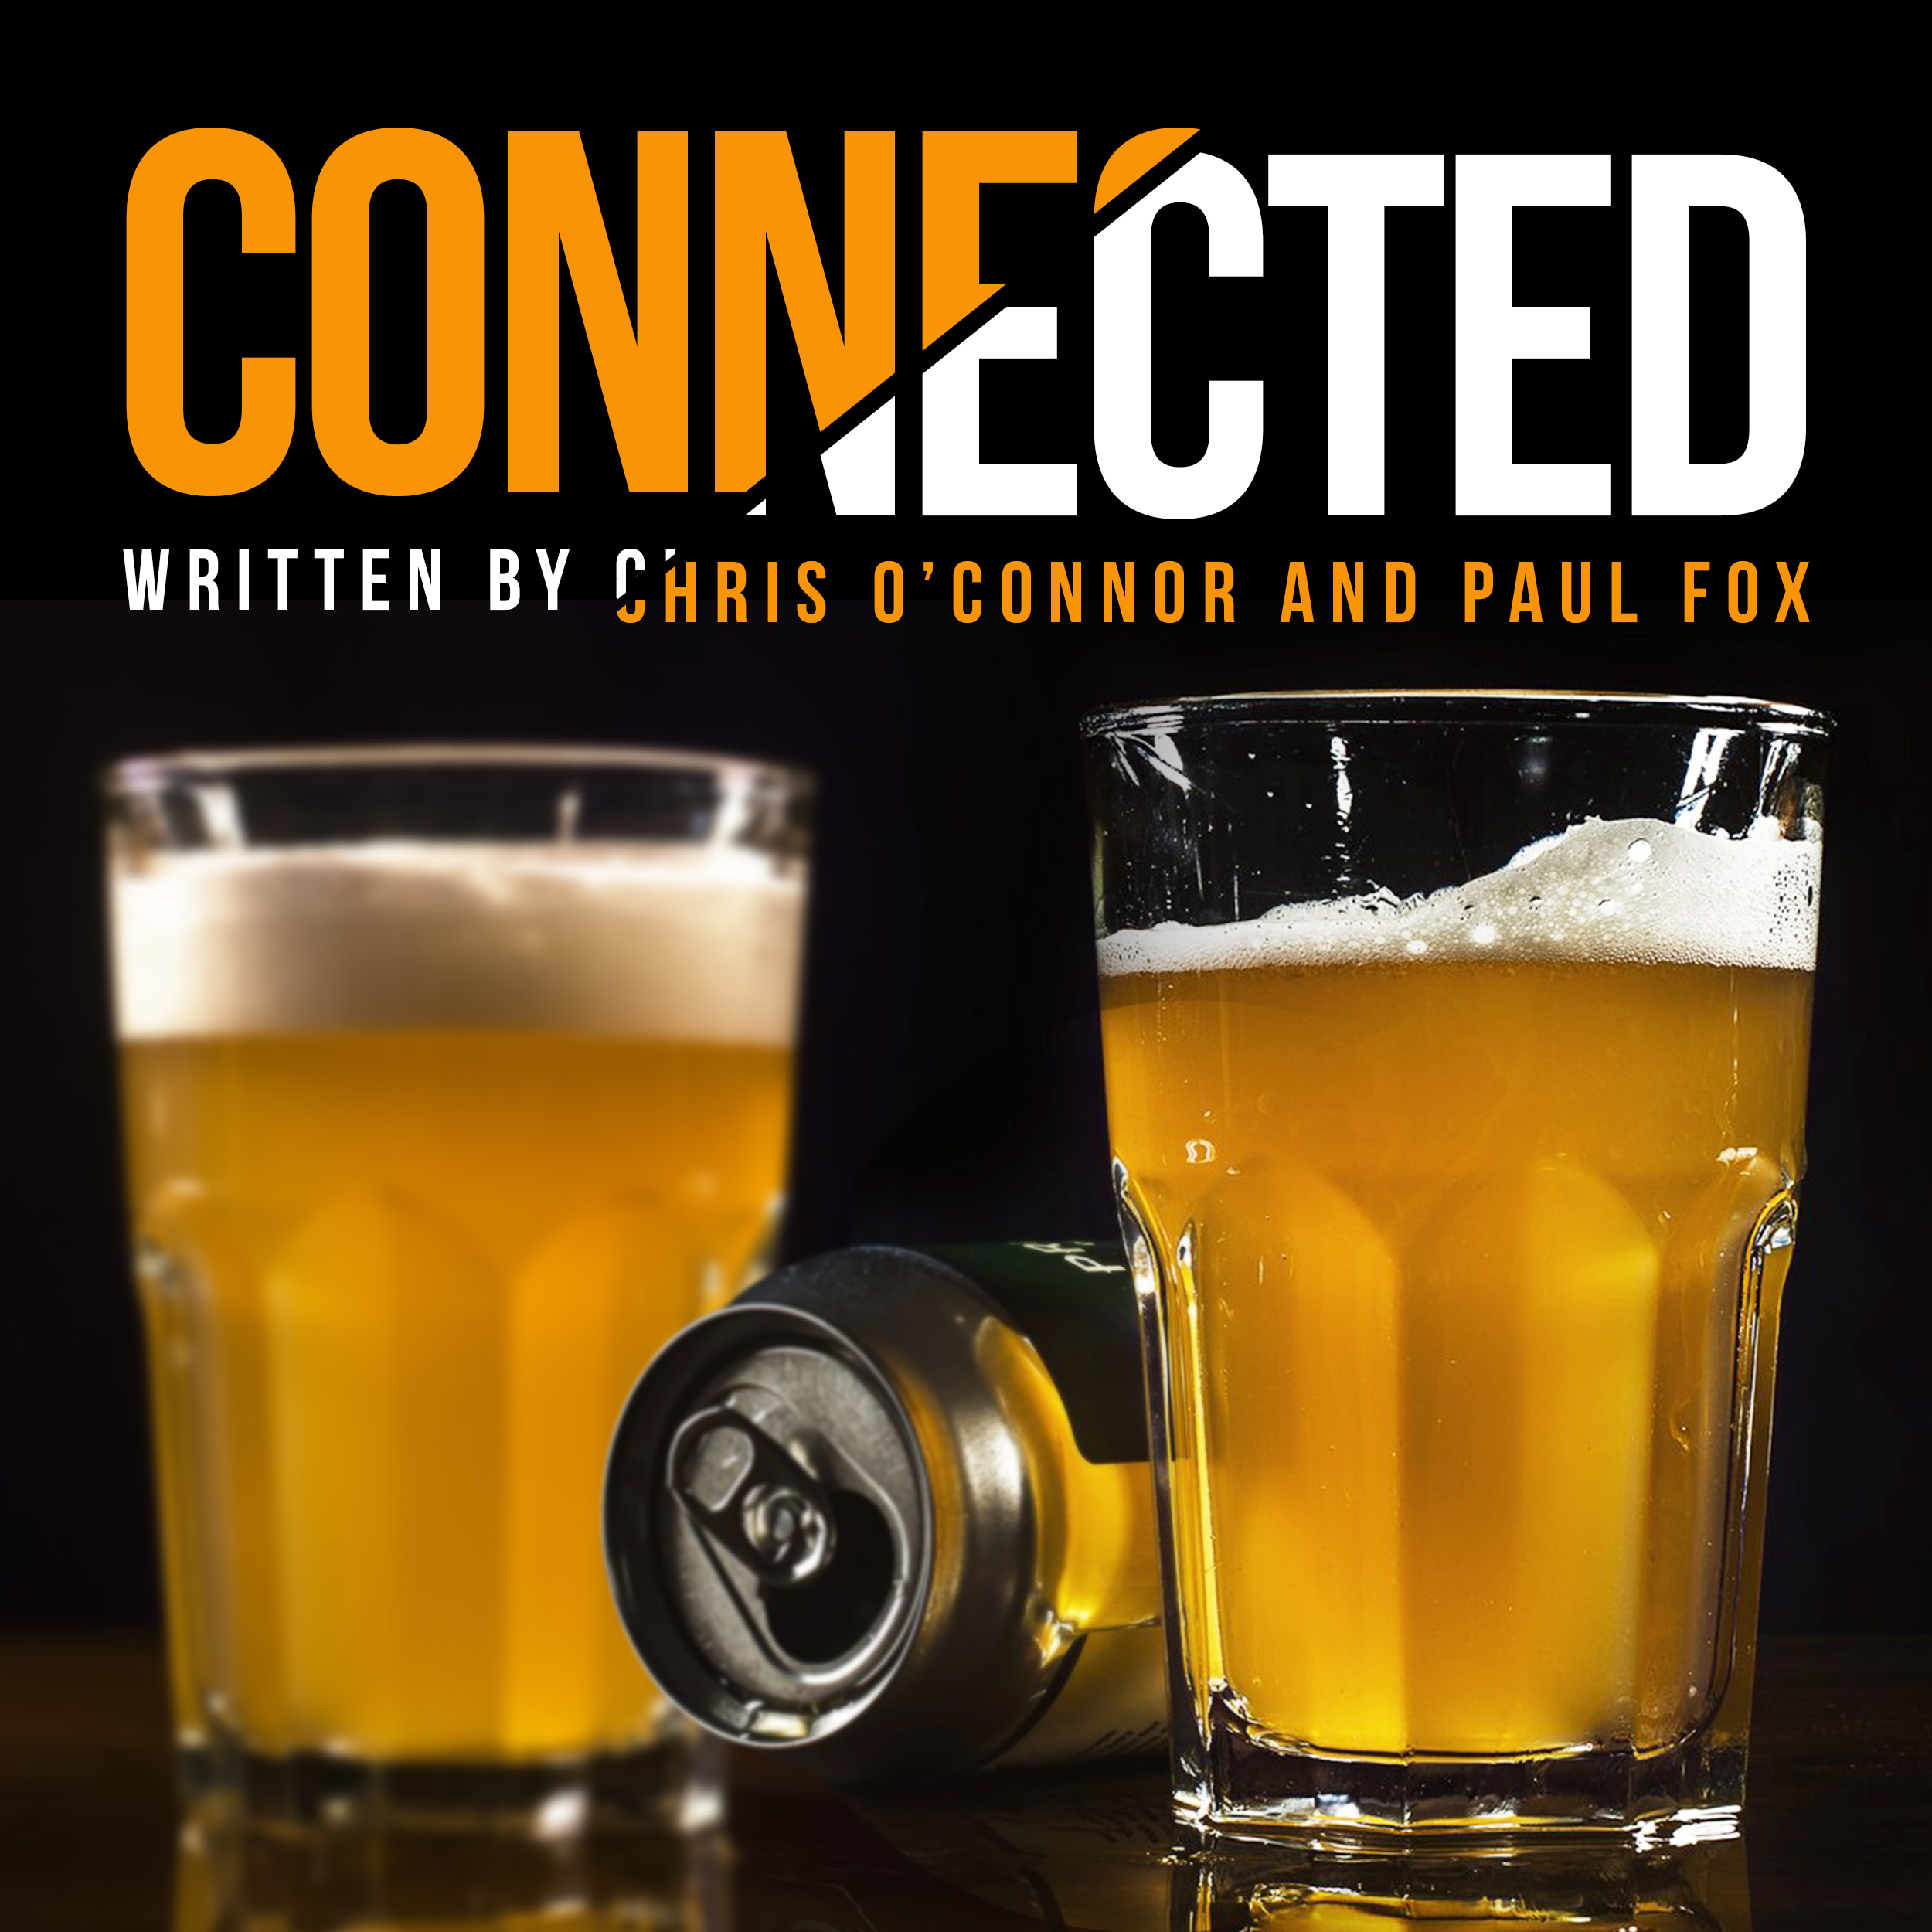 The poster for Connected featuring two halves of lager and an empty can